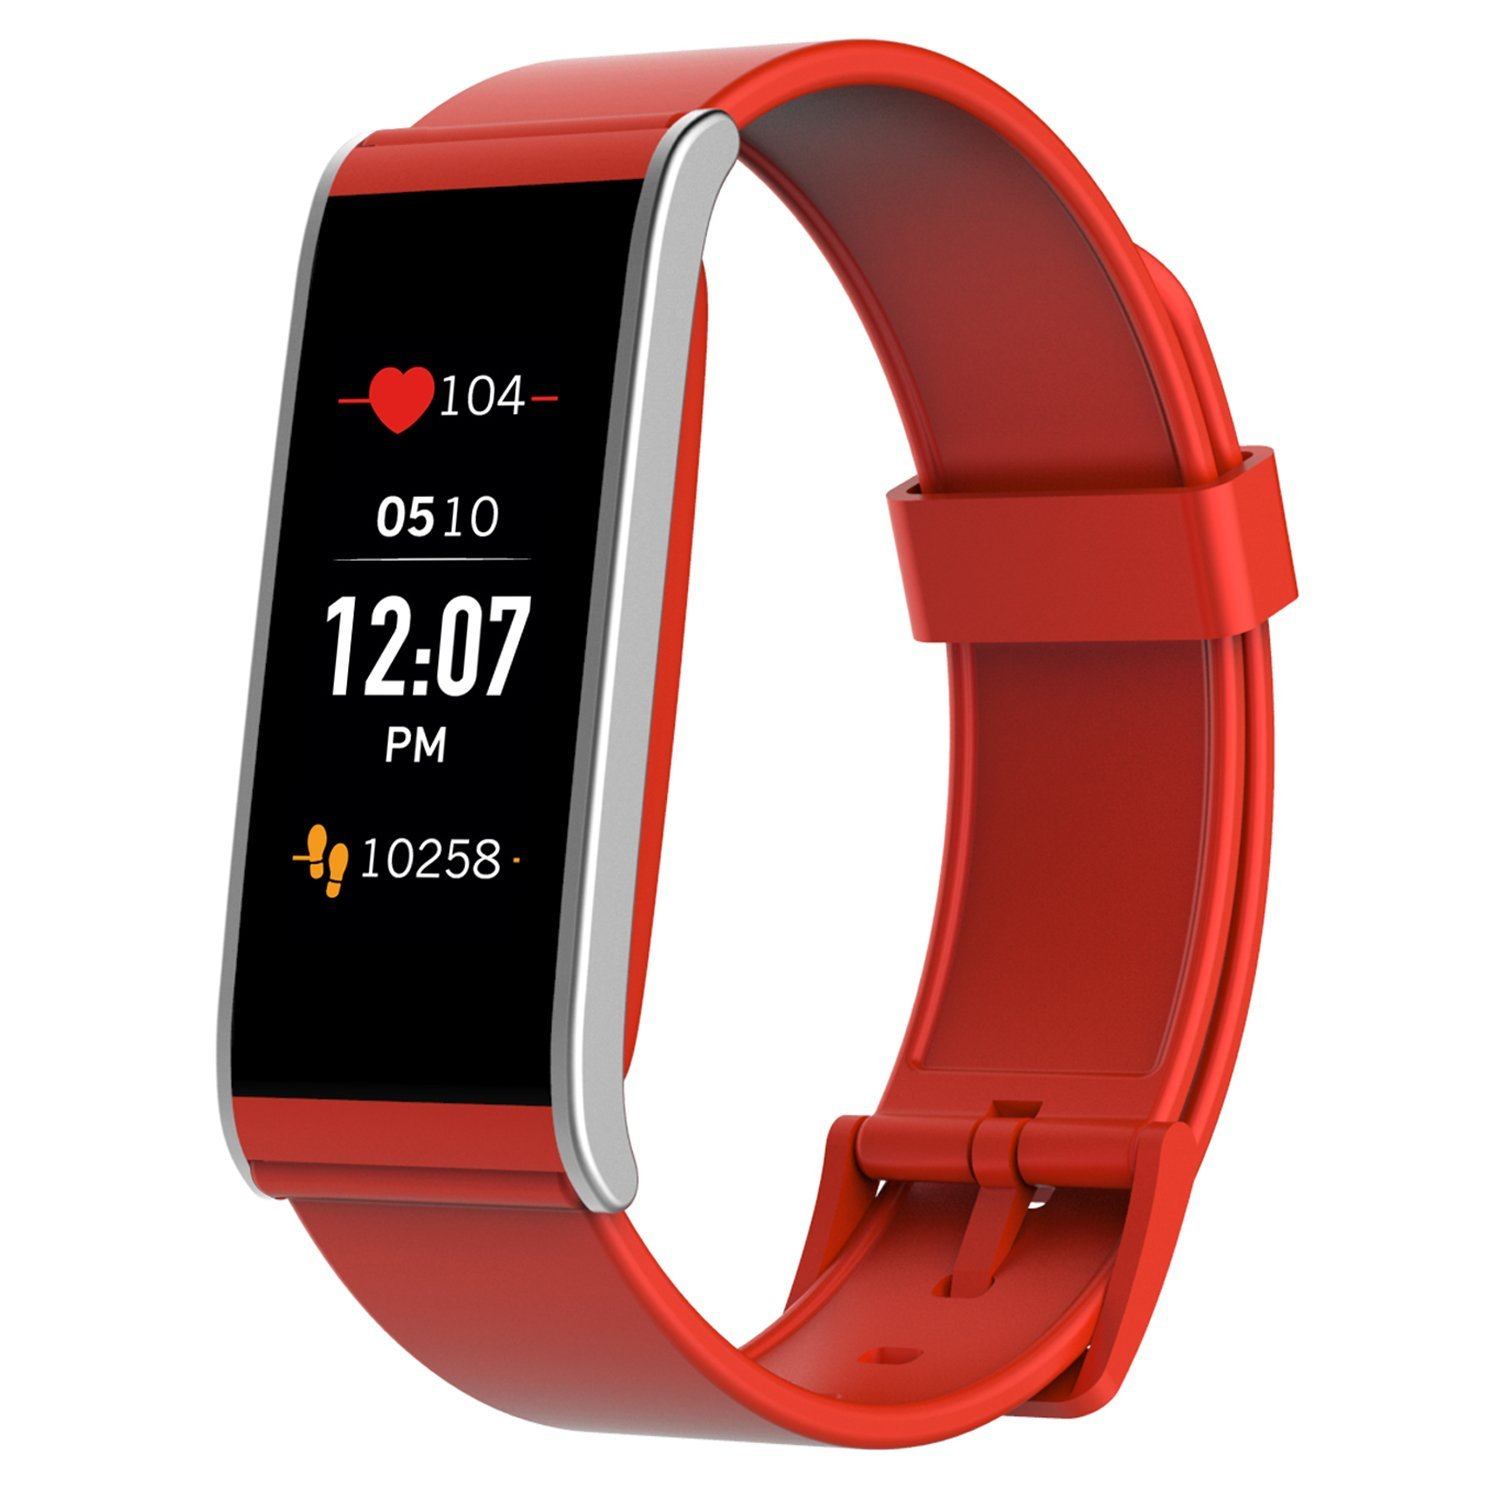 MyKronoz ZeFit4 HR Fitness Activity Tracker with Heart Rate Monitoring, Color Touchscreen & Smart Notifications - Red/Silver - New Never Opened Box - (Renewed) by MYKRONOZ